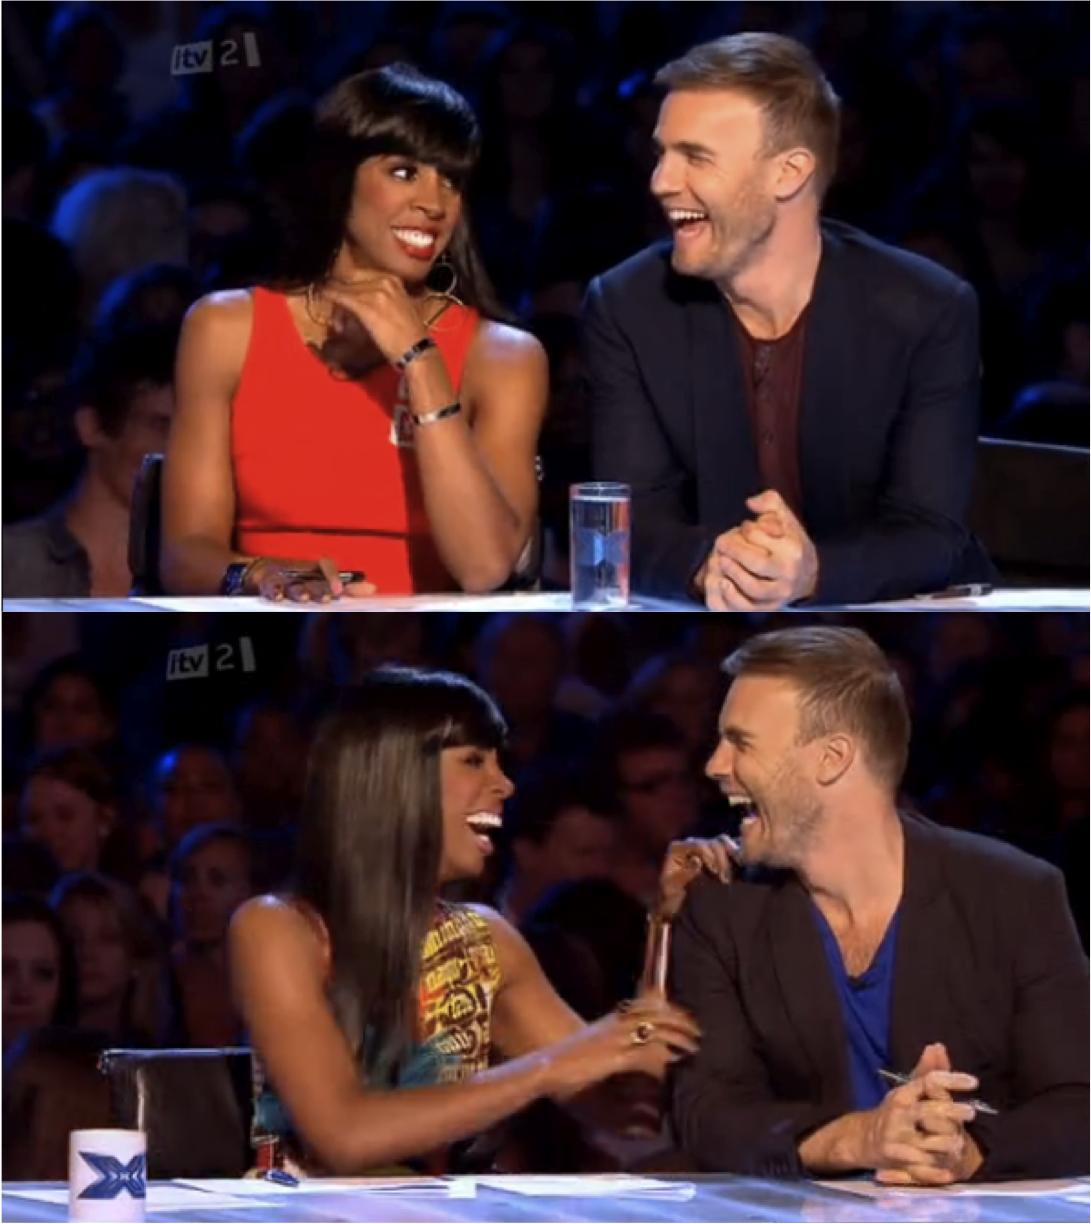 gary barlow and kelly rowland flirting The x factor 2011: read on for the goss on the first episode & what tulisa, gary barlow & kelly rowland are like as judges.